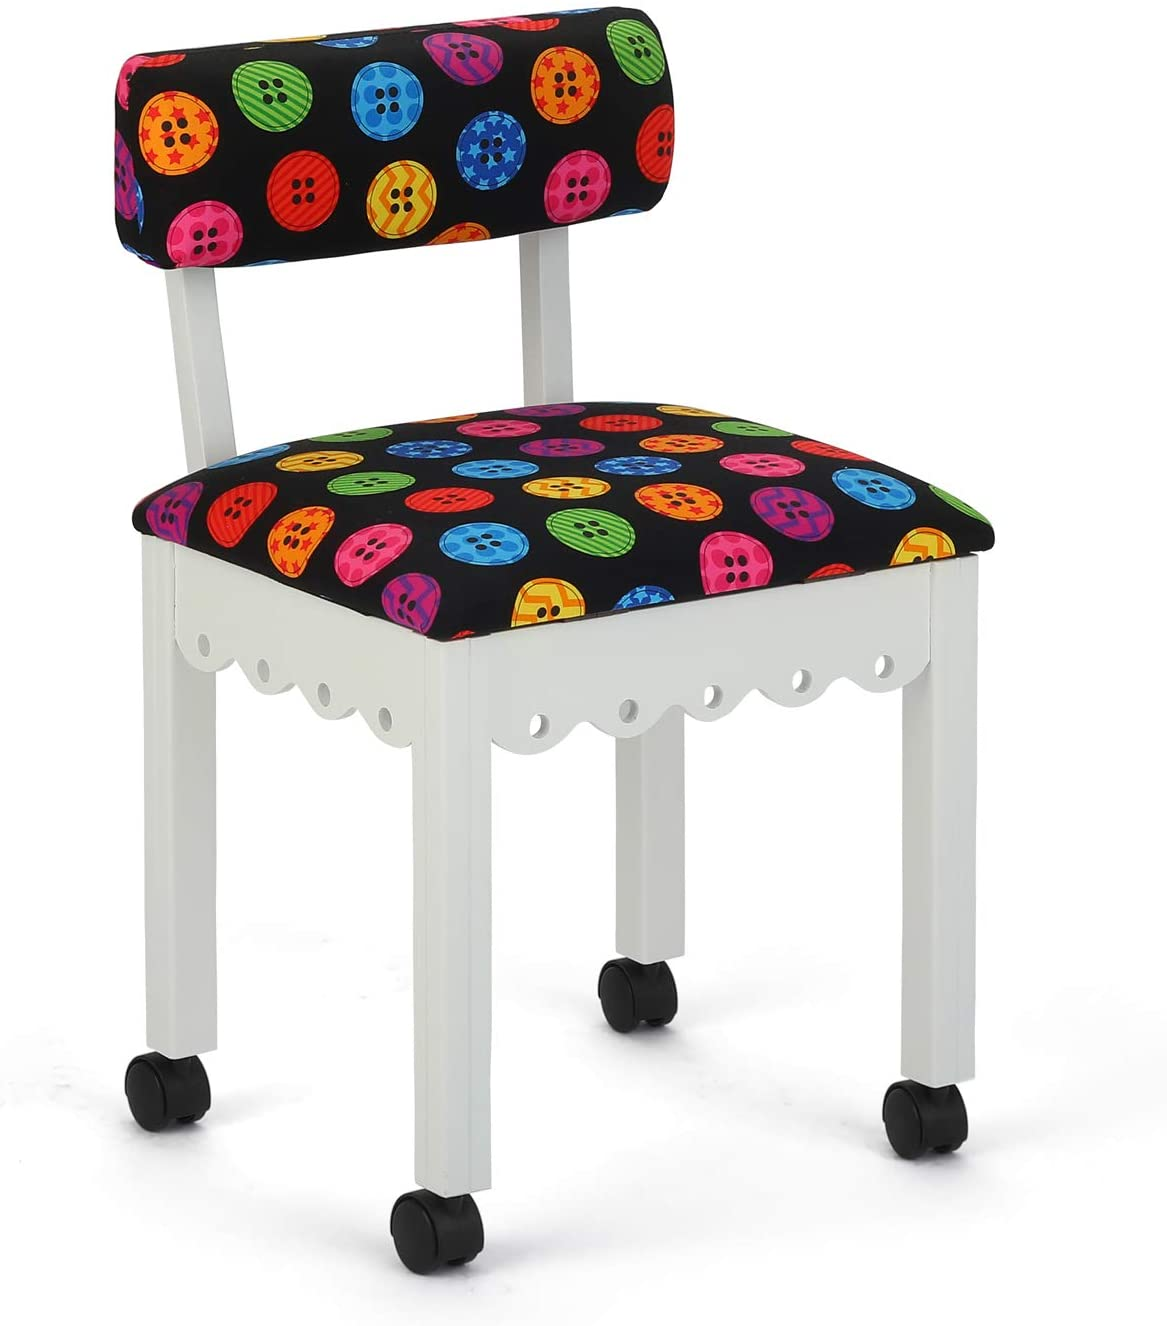 Arrow 8011 Wood Sewing and Craft Chair Design Gingerbread a with Max 61% OFF Cheap mail order specialty store